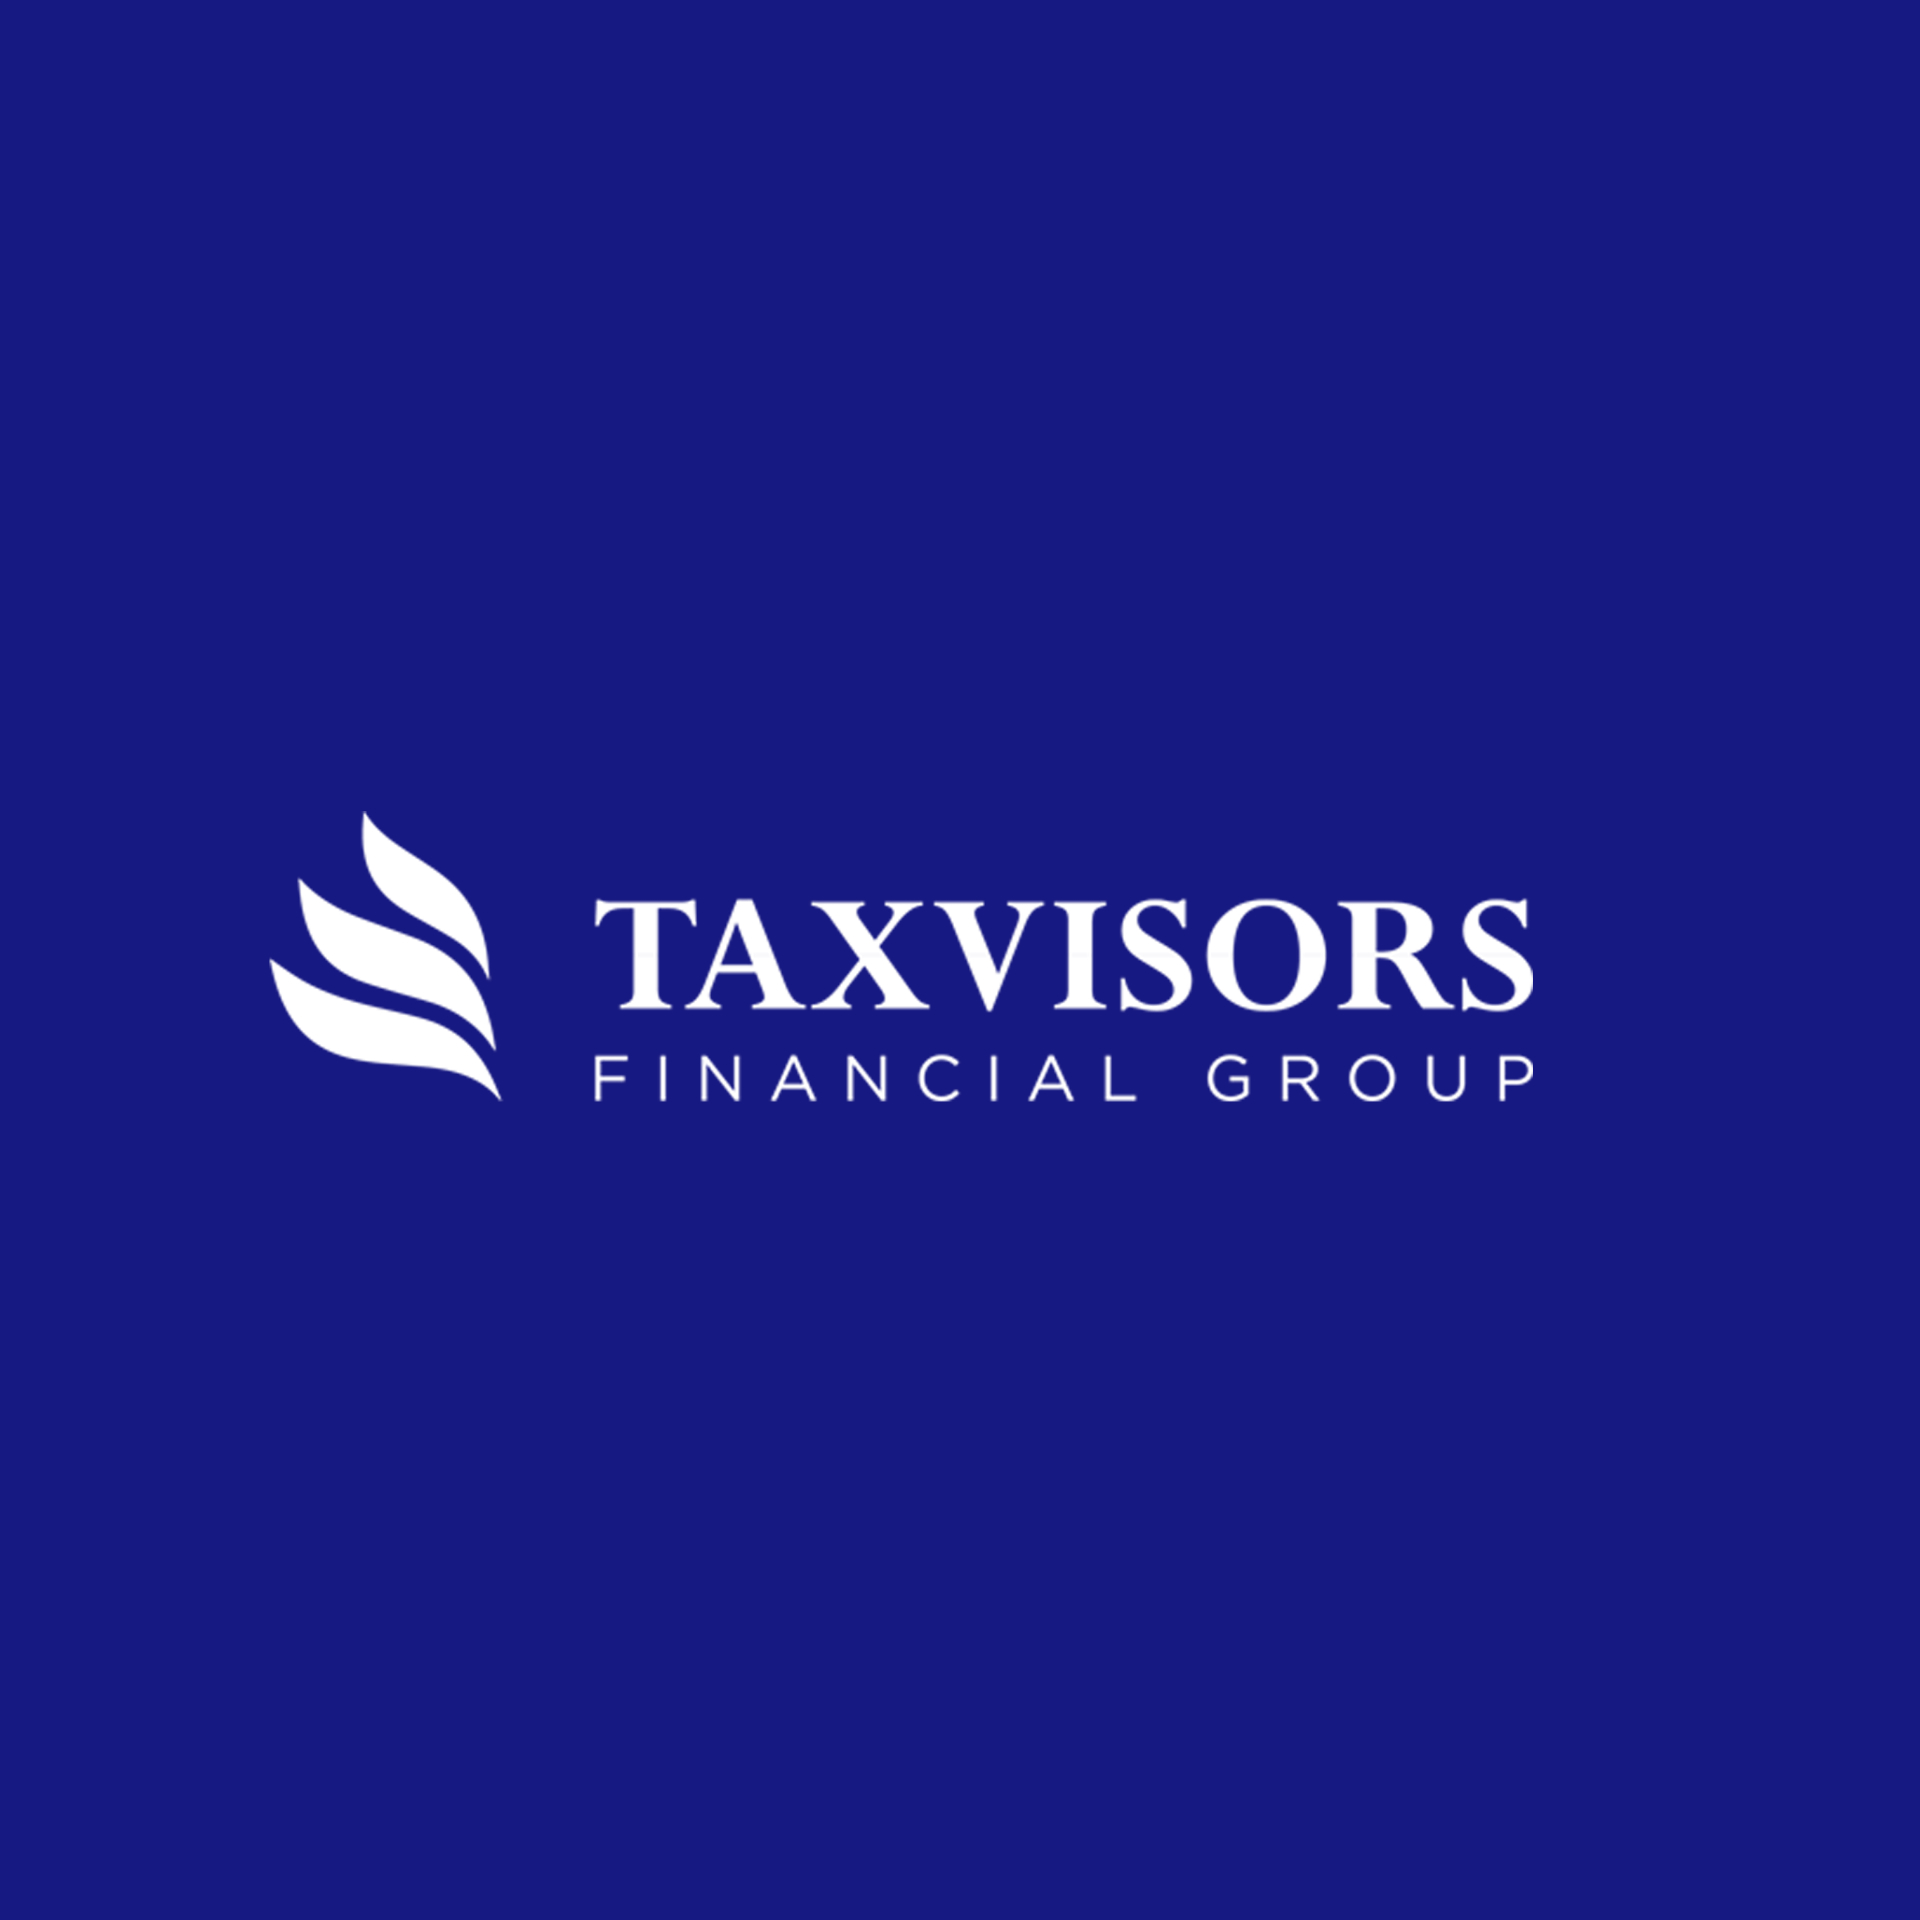 Taxvisors Financial Services